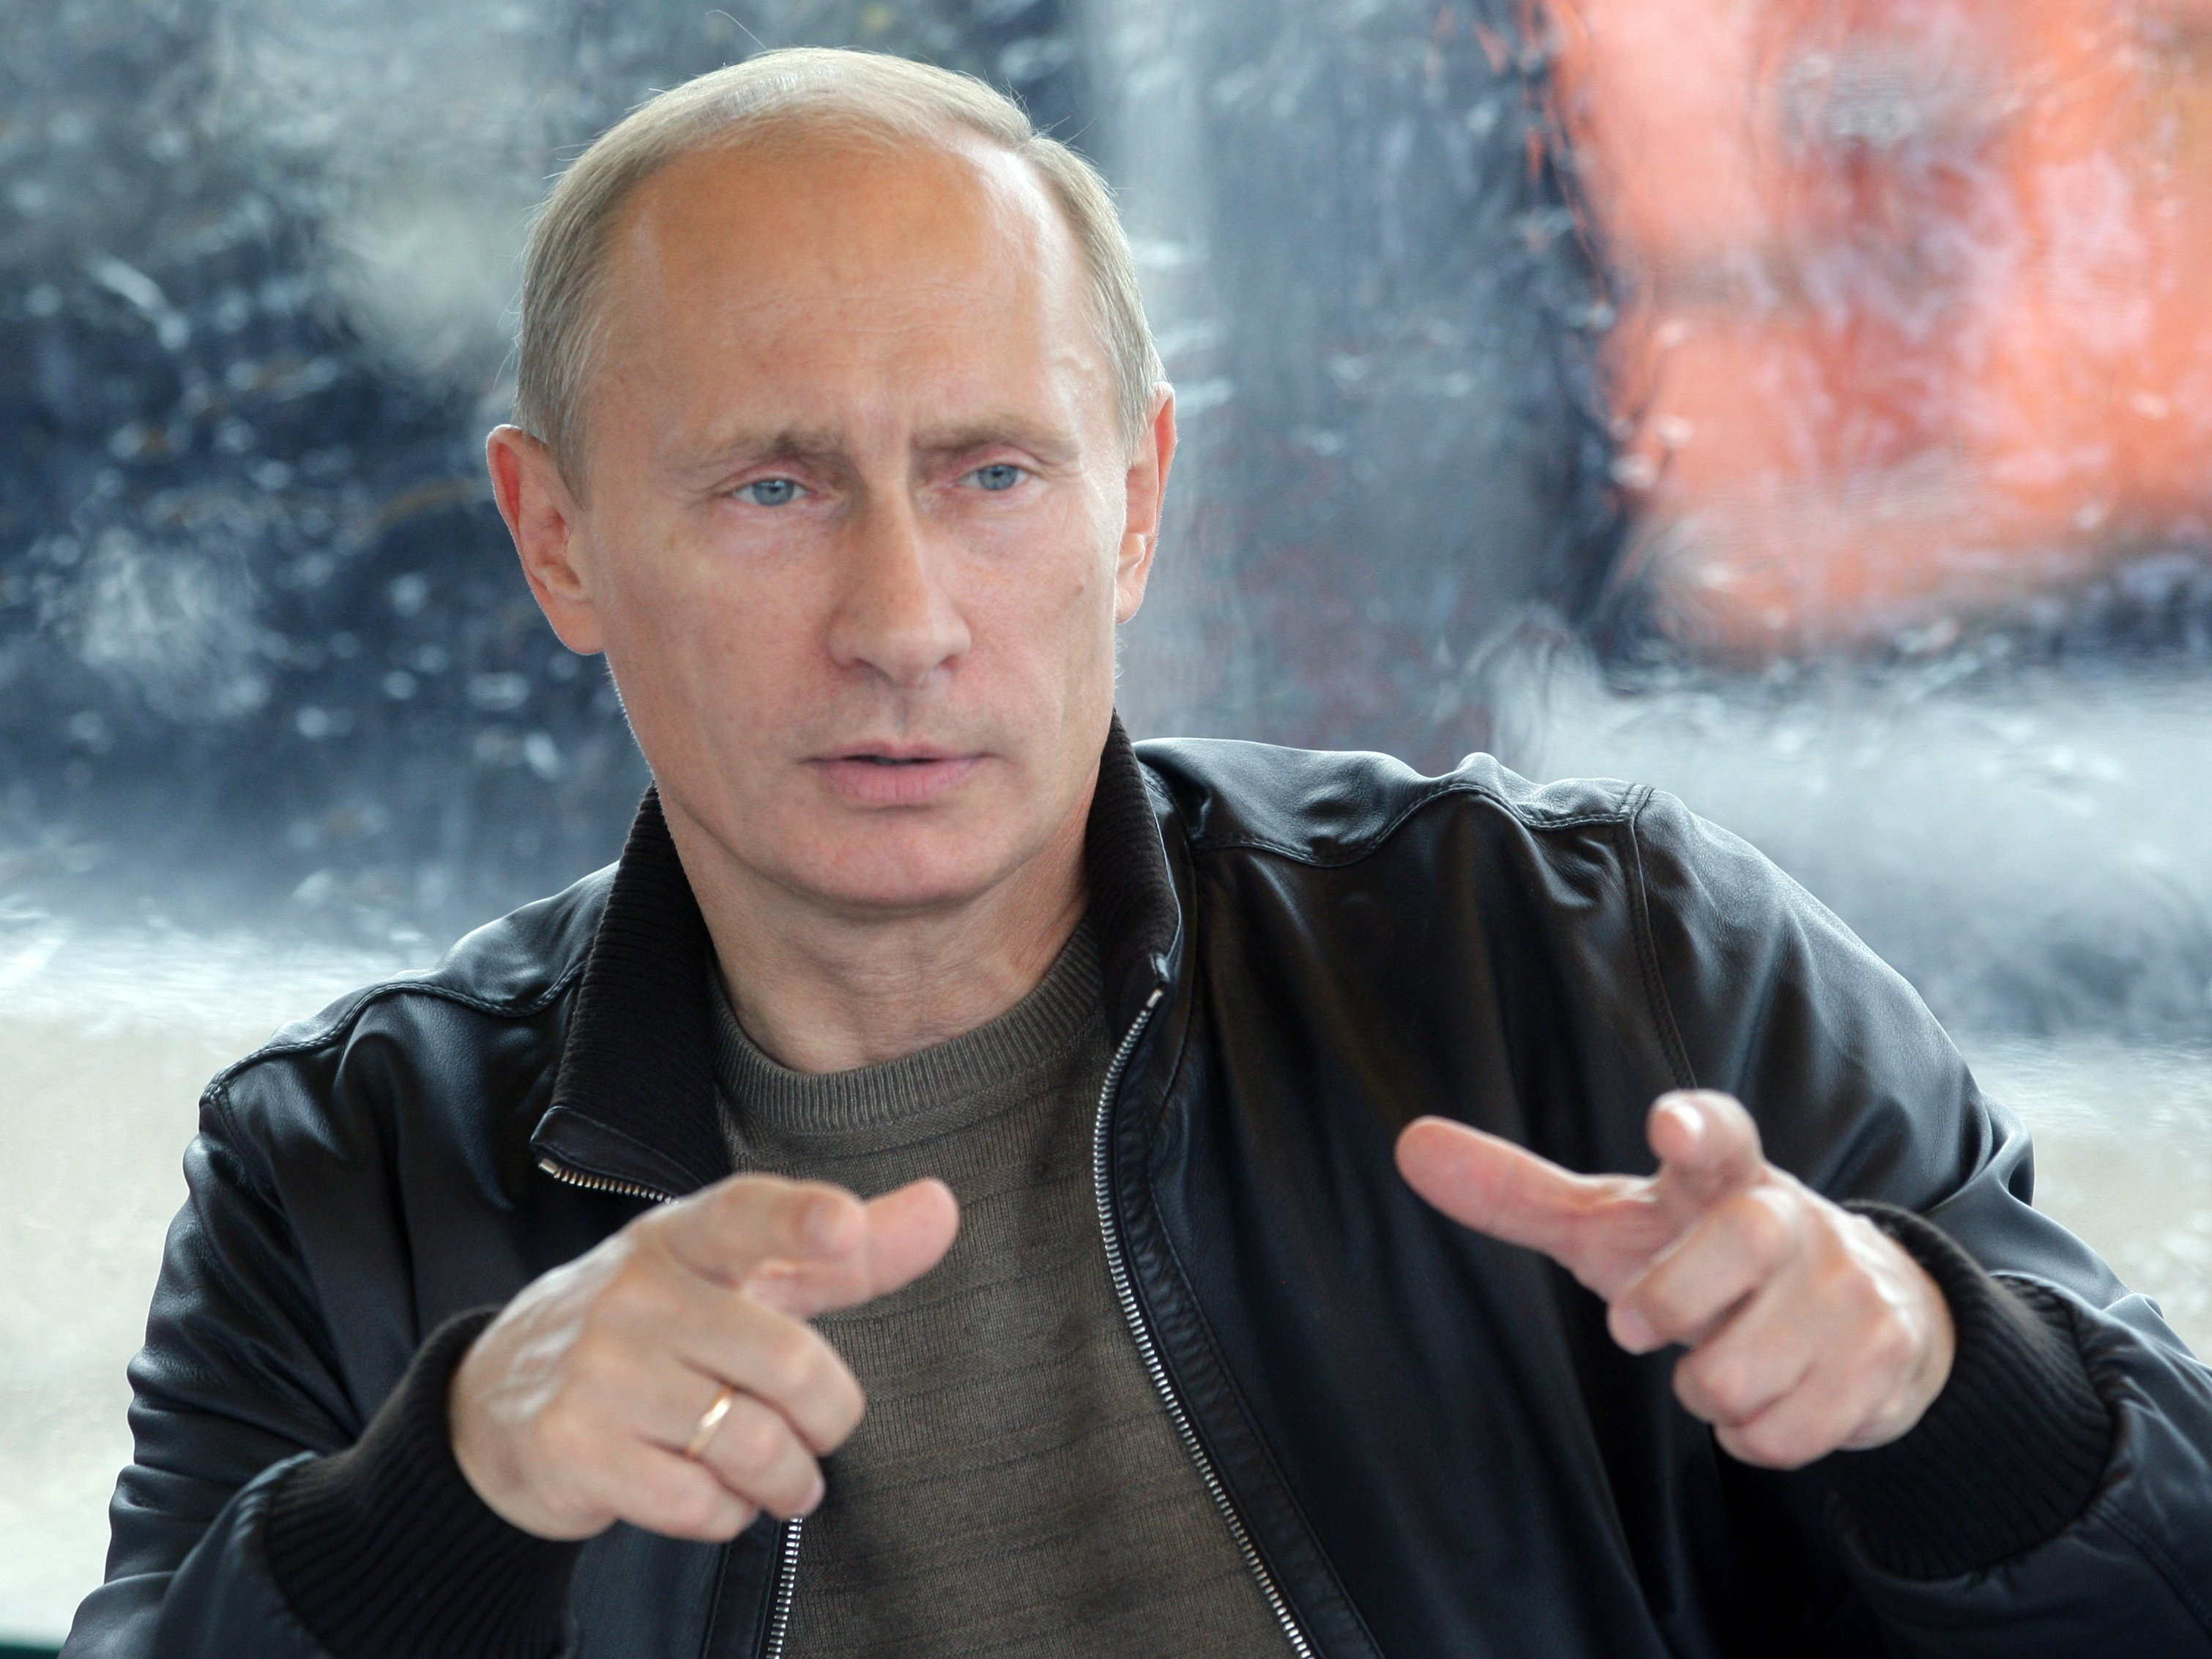 Vladimir Putin 12020 - Macron Levels Remarkable Attack On Russian 'Propaganda' Organs As Putin Stands By His Side